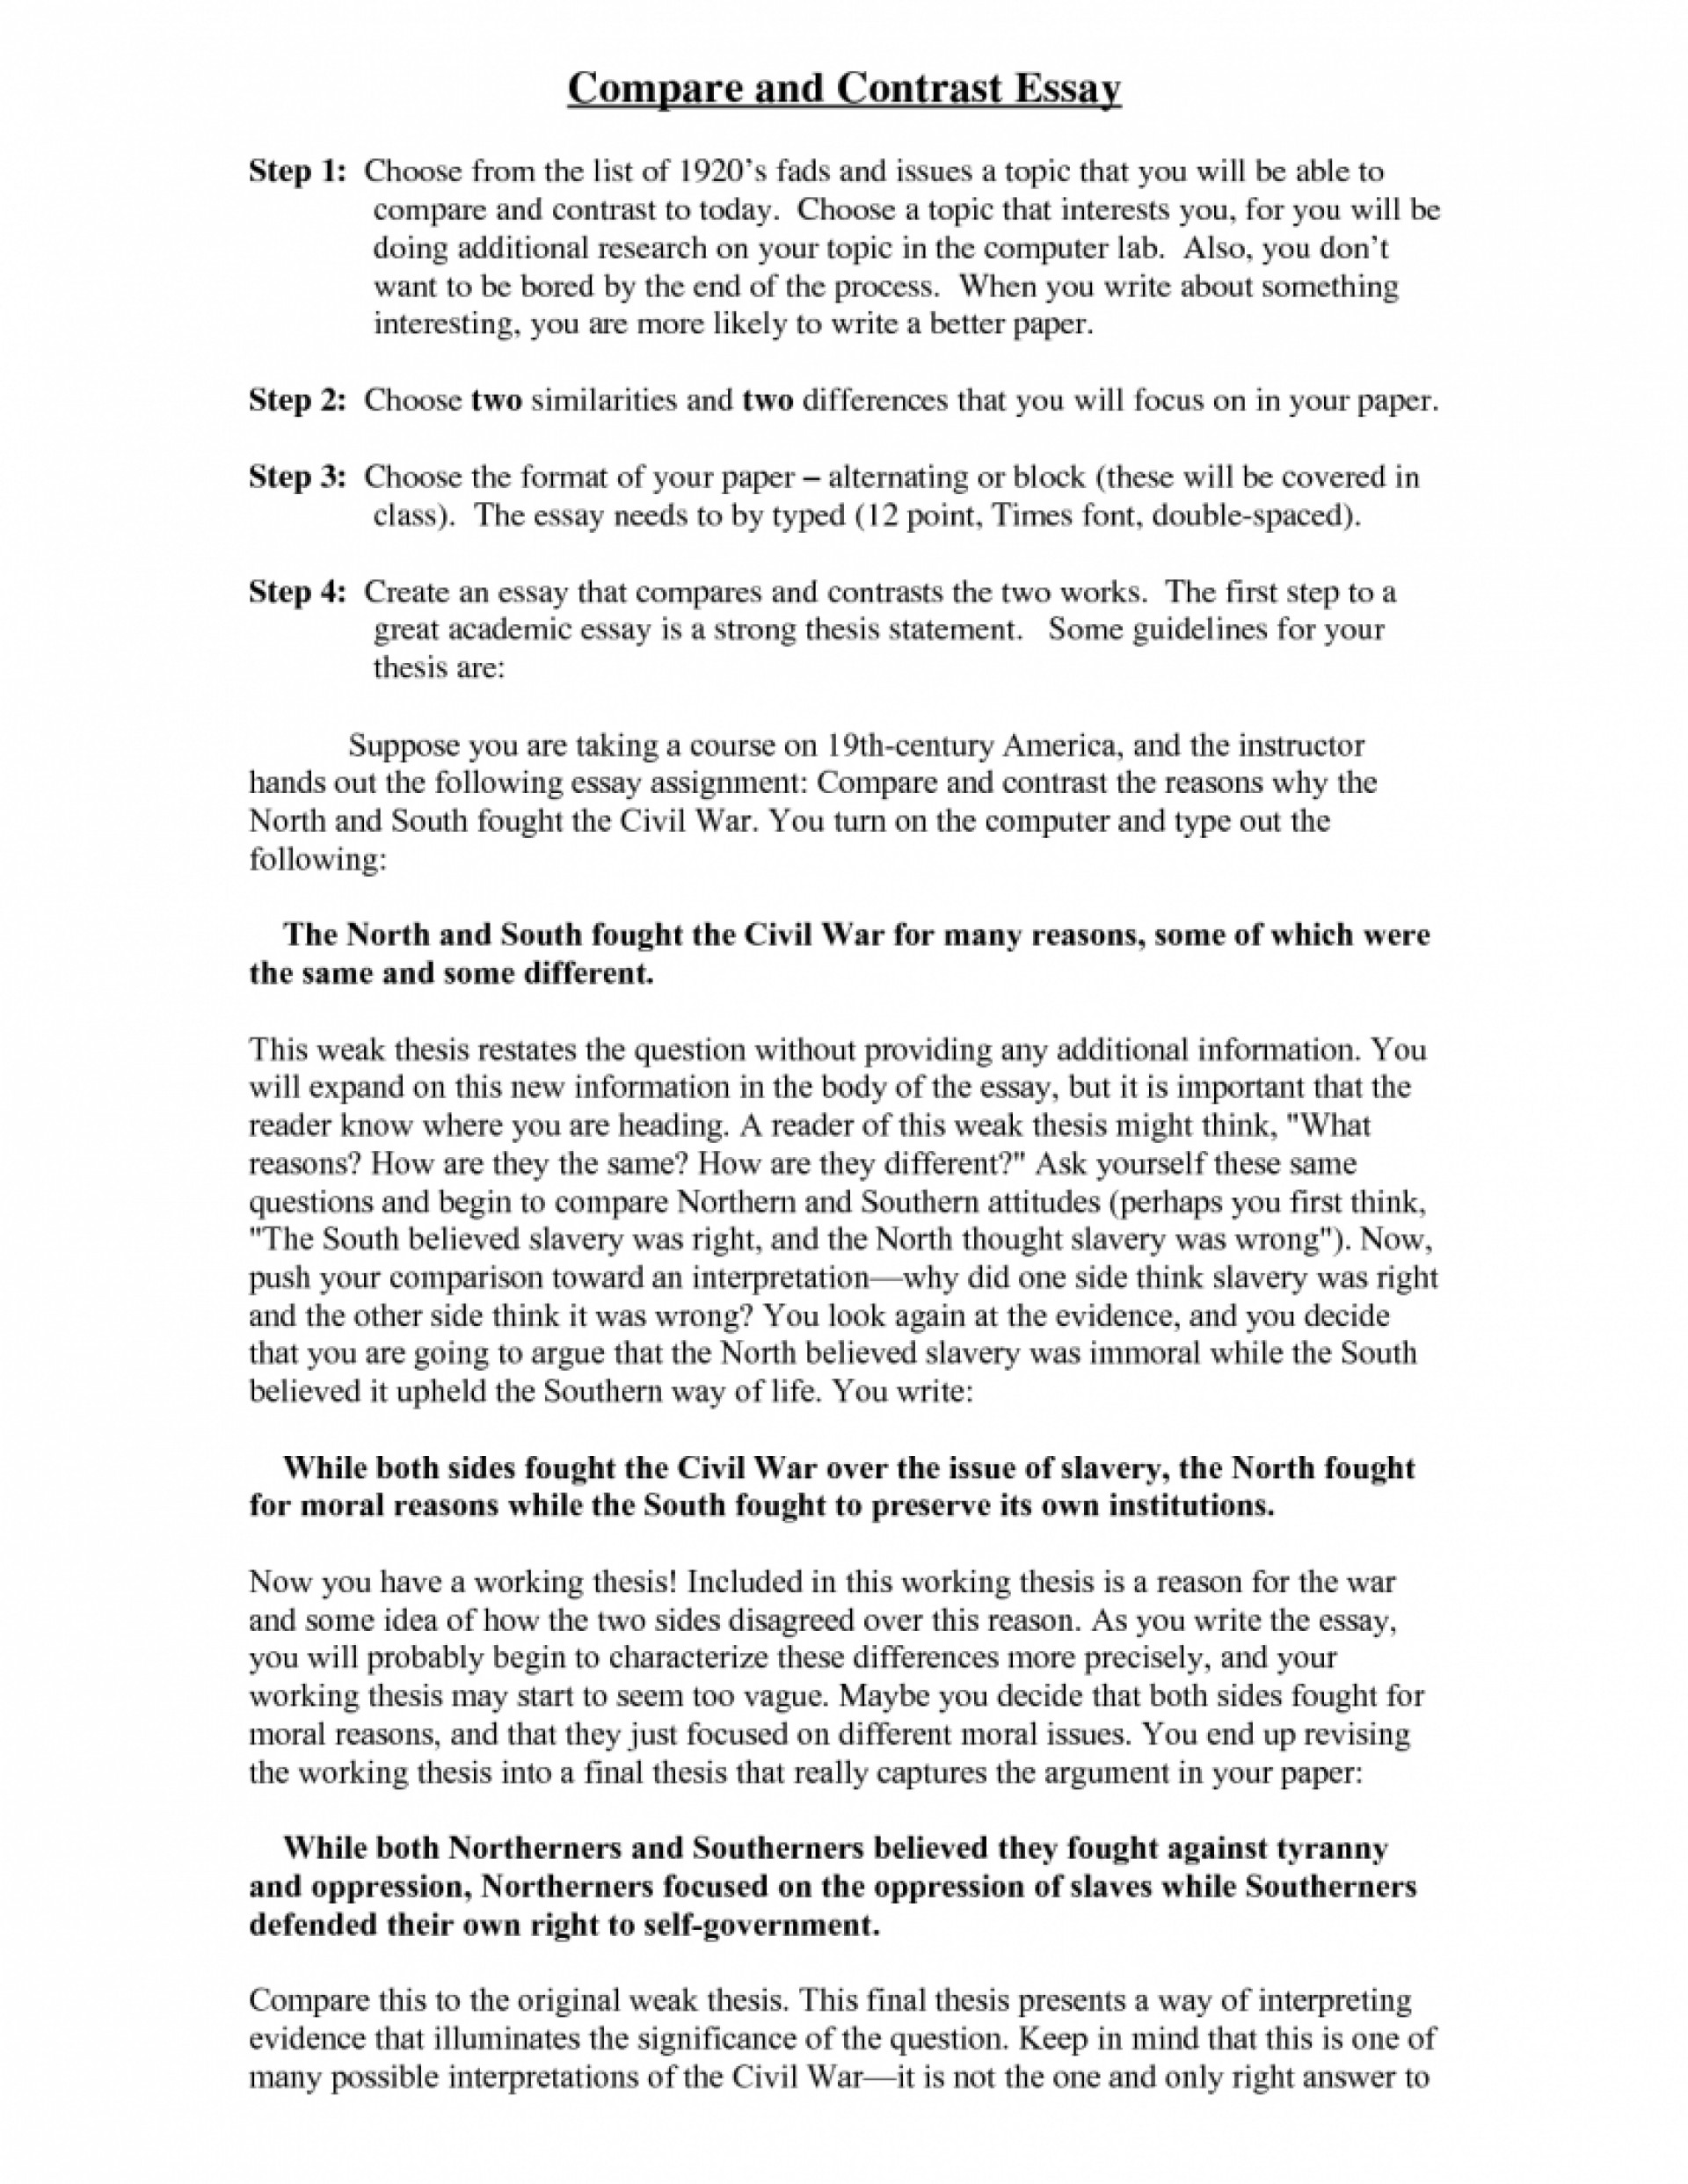 014 Comparative Essay Thesis Exceptional Pictures Design Compare At Writing Pdf Pare And Contrast Best Ideas Of Comparison Gabewins For Sample Archaicawful High School College 5th Grade 1920